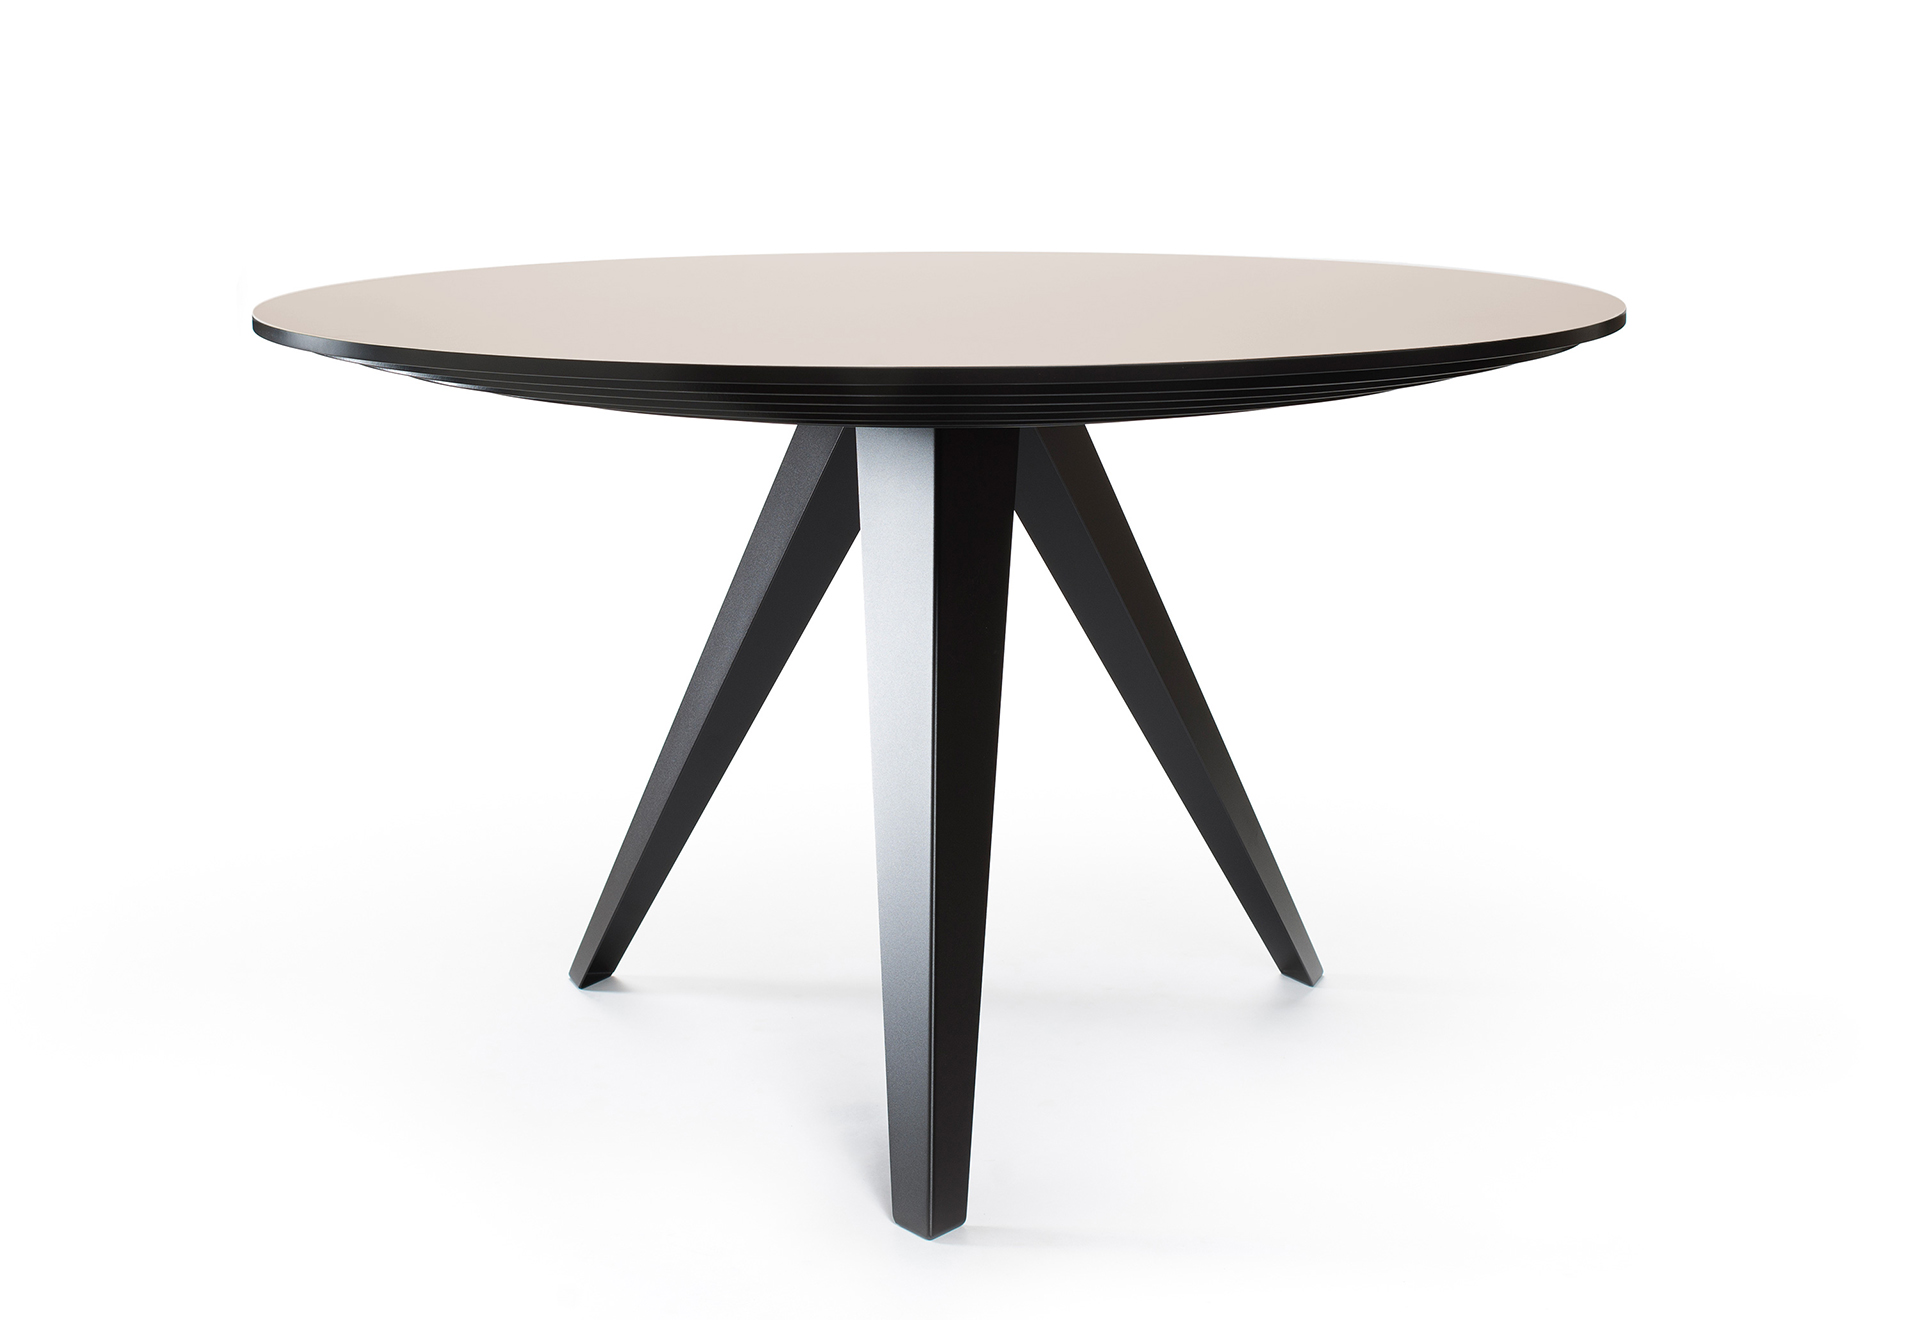 Table Ronde 130 Cm.Round Dining Table Belly L Kees Marcelis L Odesi Your Dutch Design